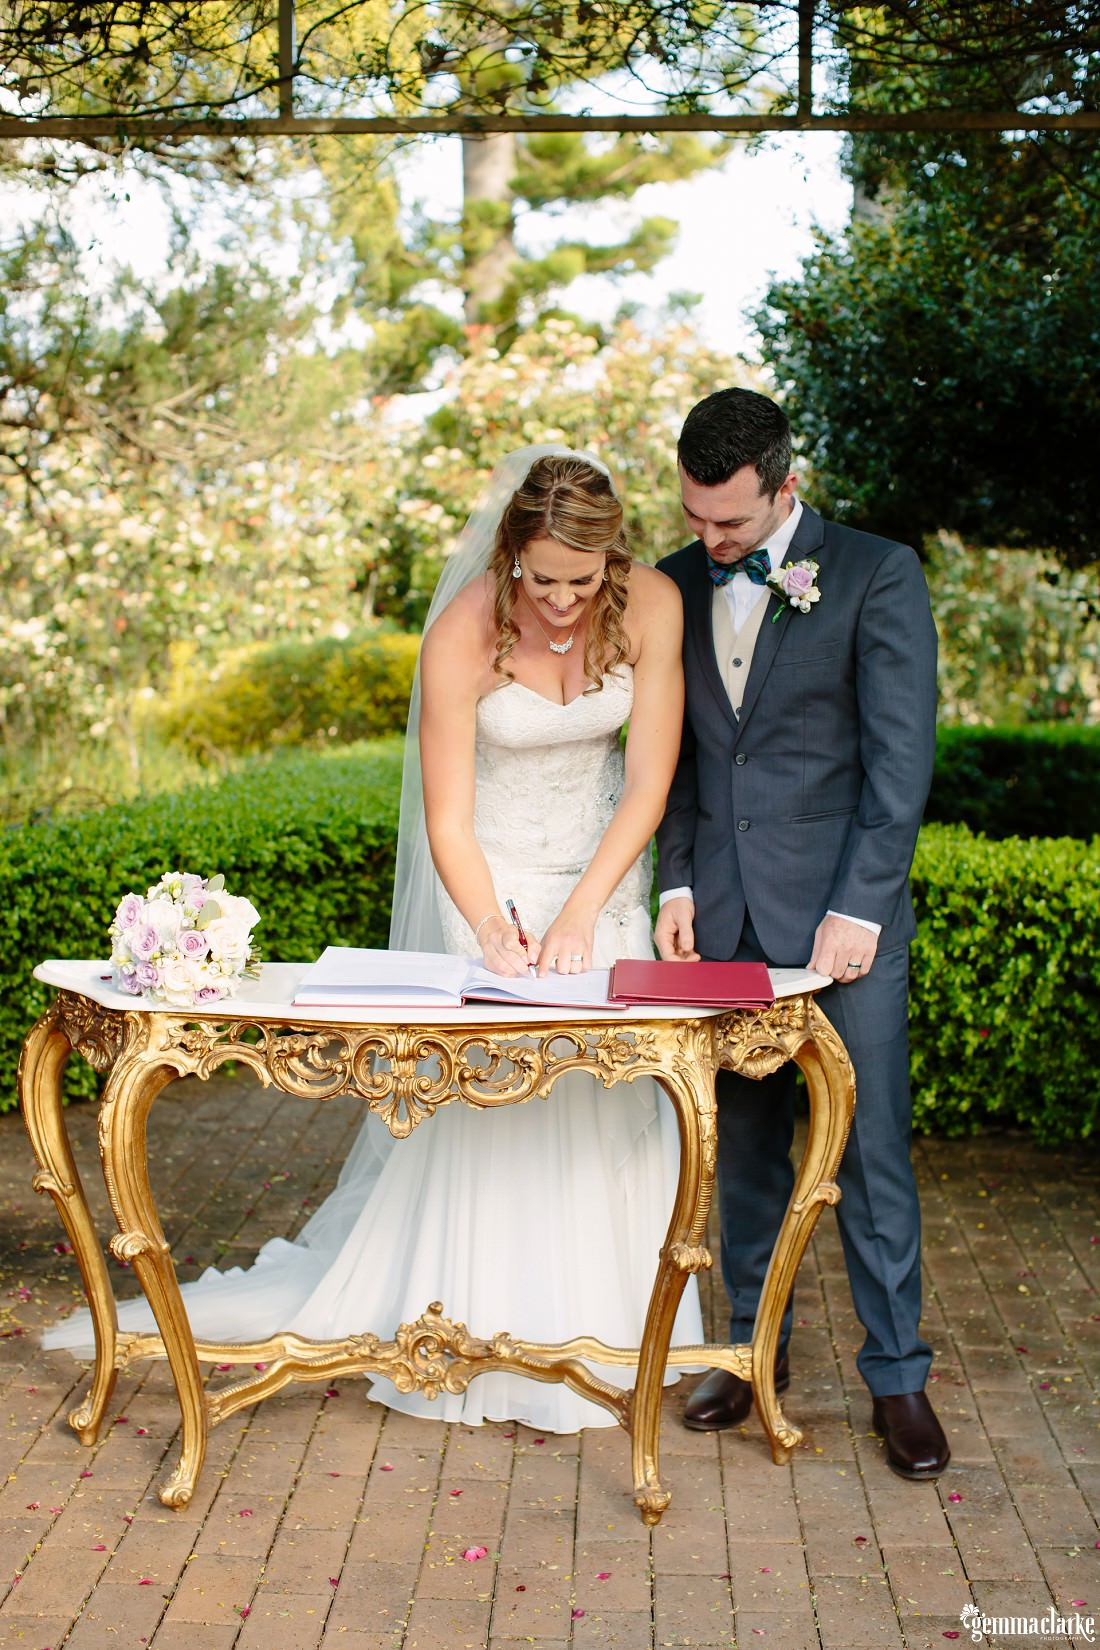 A bride and groom at their signing table